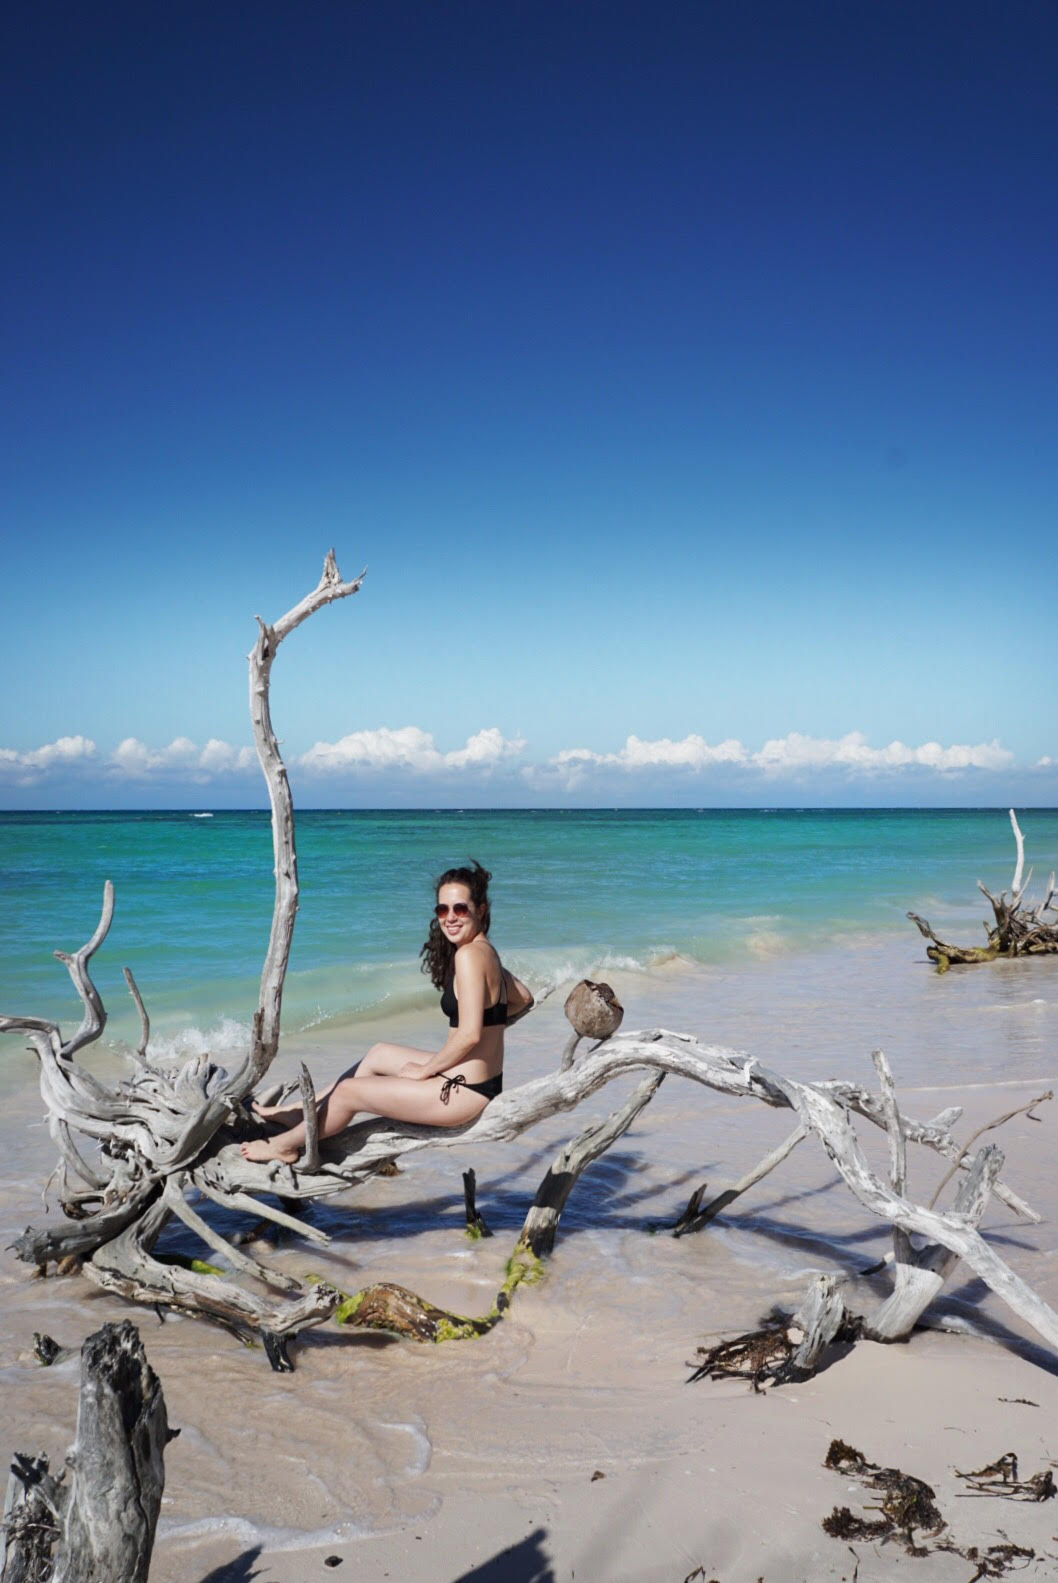 Take a day trip to Cayo Jutias